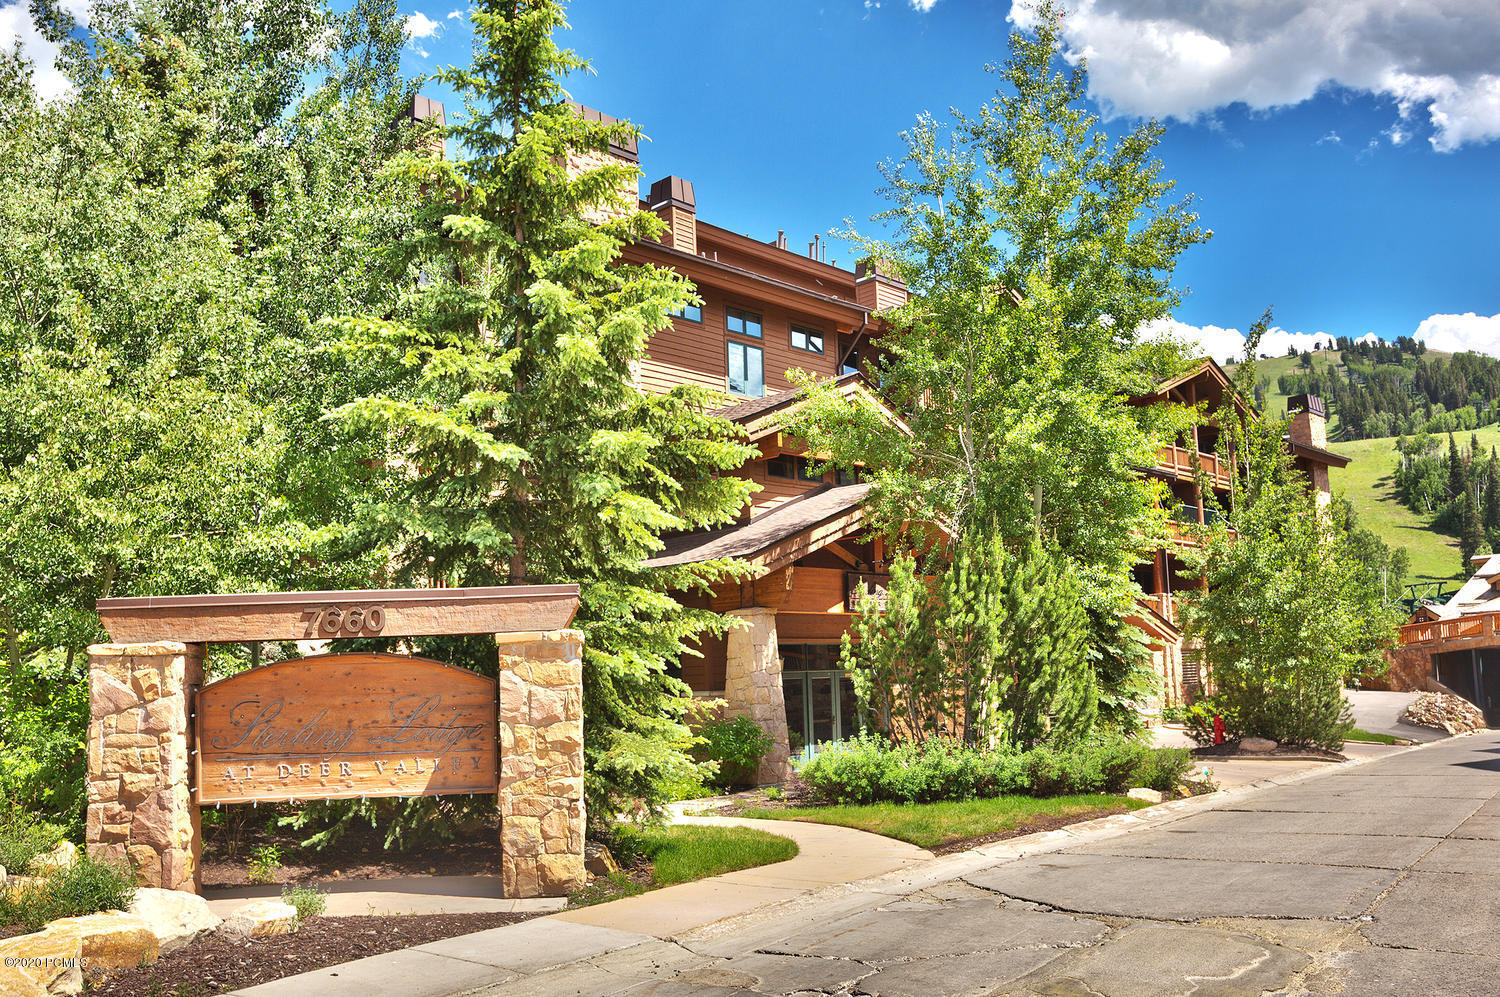 7660 Royal Street, Park City, Utah 84060, 4 Bedrooms Bedrooms, ,4 BathroomsBathrooms,Fractional Interest,For Sale,Royal,12003883